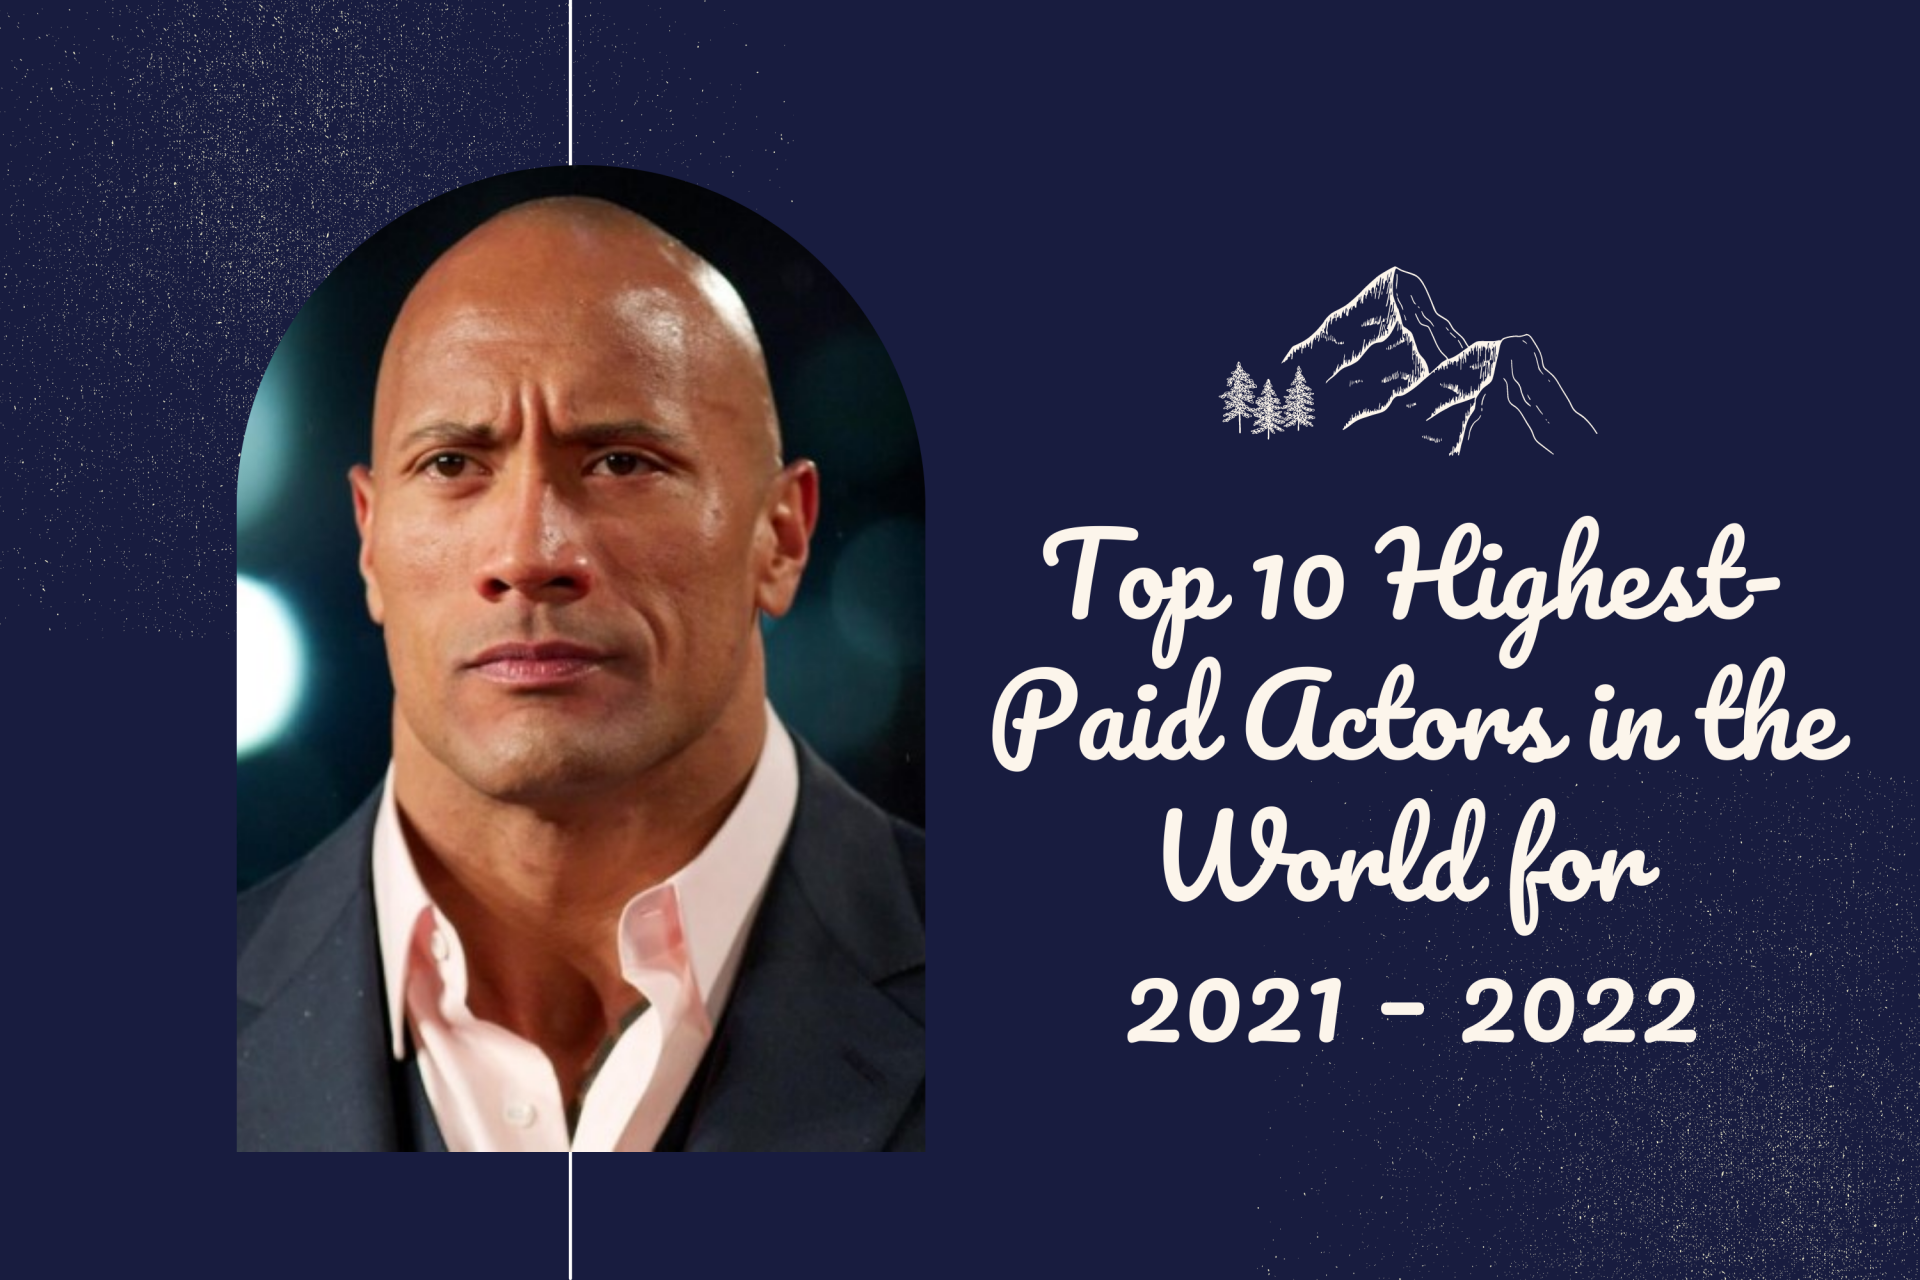 Top 10 Highest Paid Actors in the World for 2021/2022